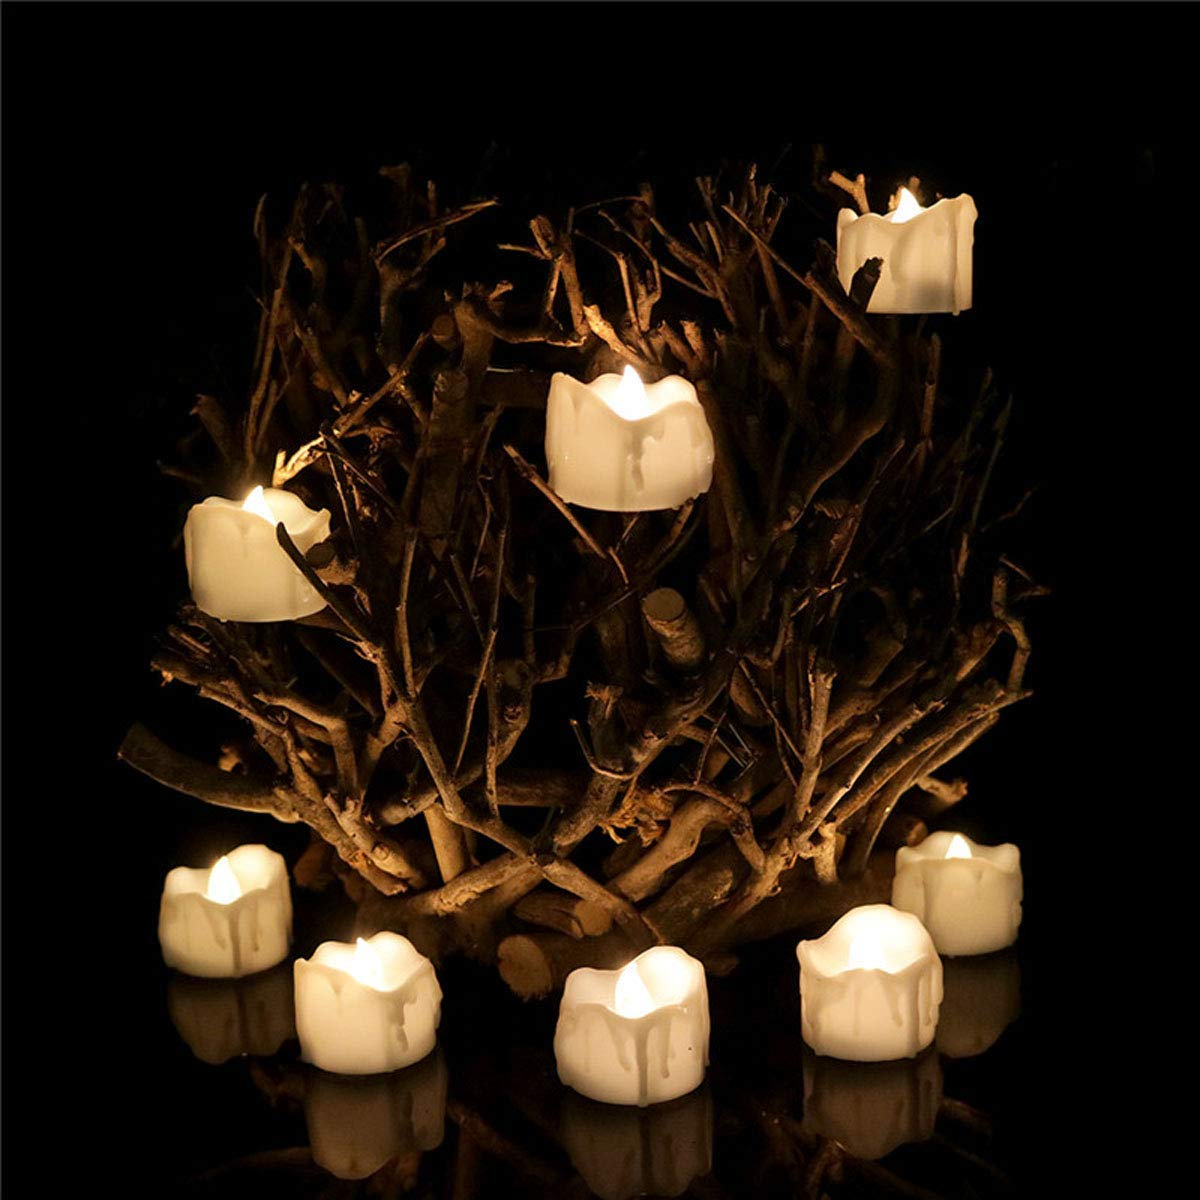 Dellukee Flameless Votive Candles Timer Drop Tear Realistic Bright Battery Operated LED Tea Lights Candle for Wedding Birthday Party Decoration, Pack of 24, Electric Fake Candle in Warm White